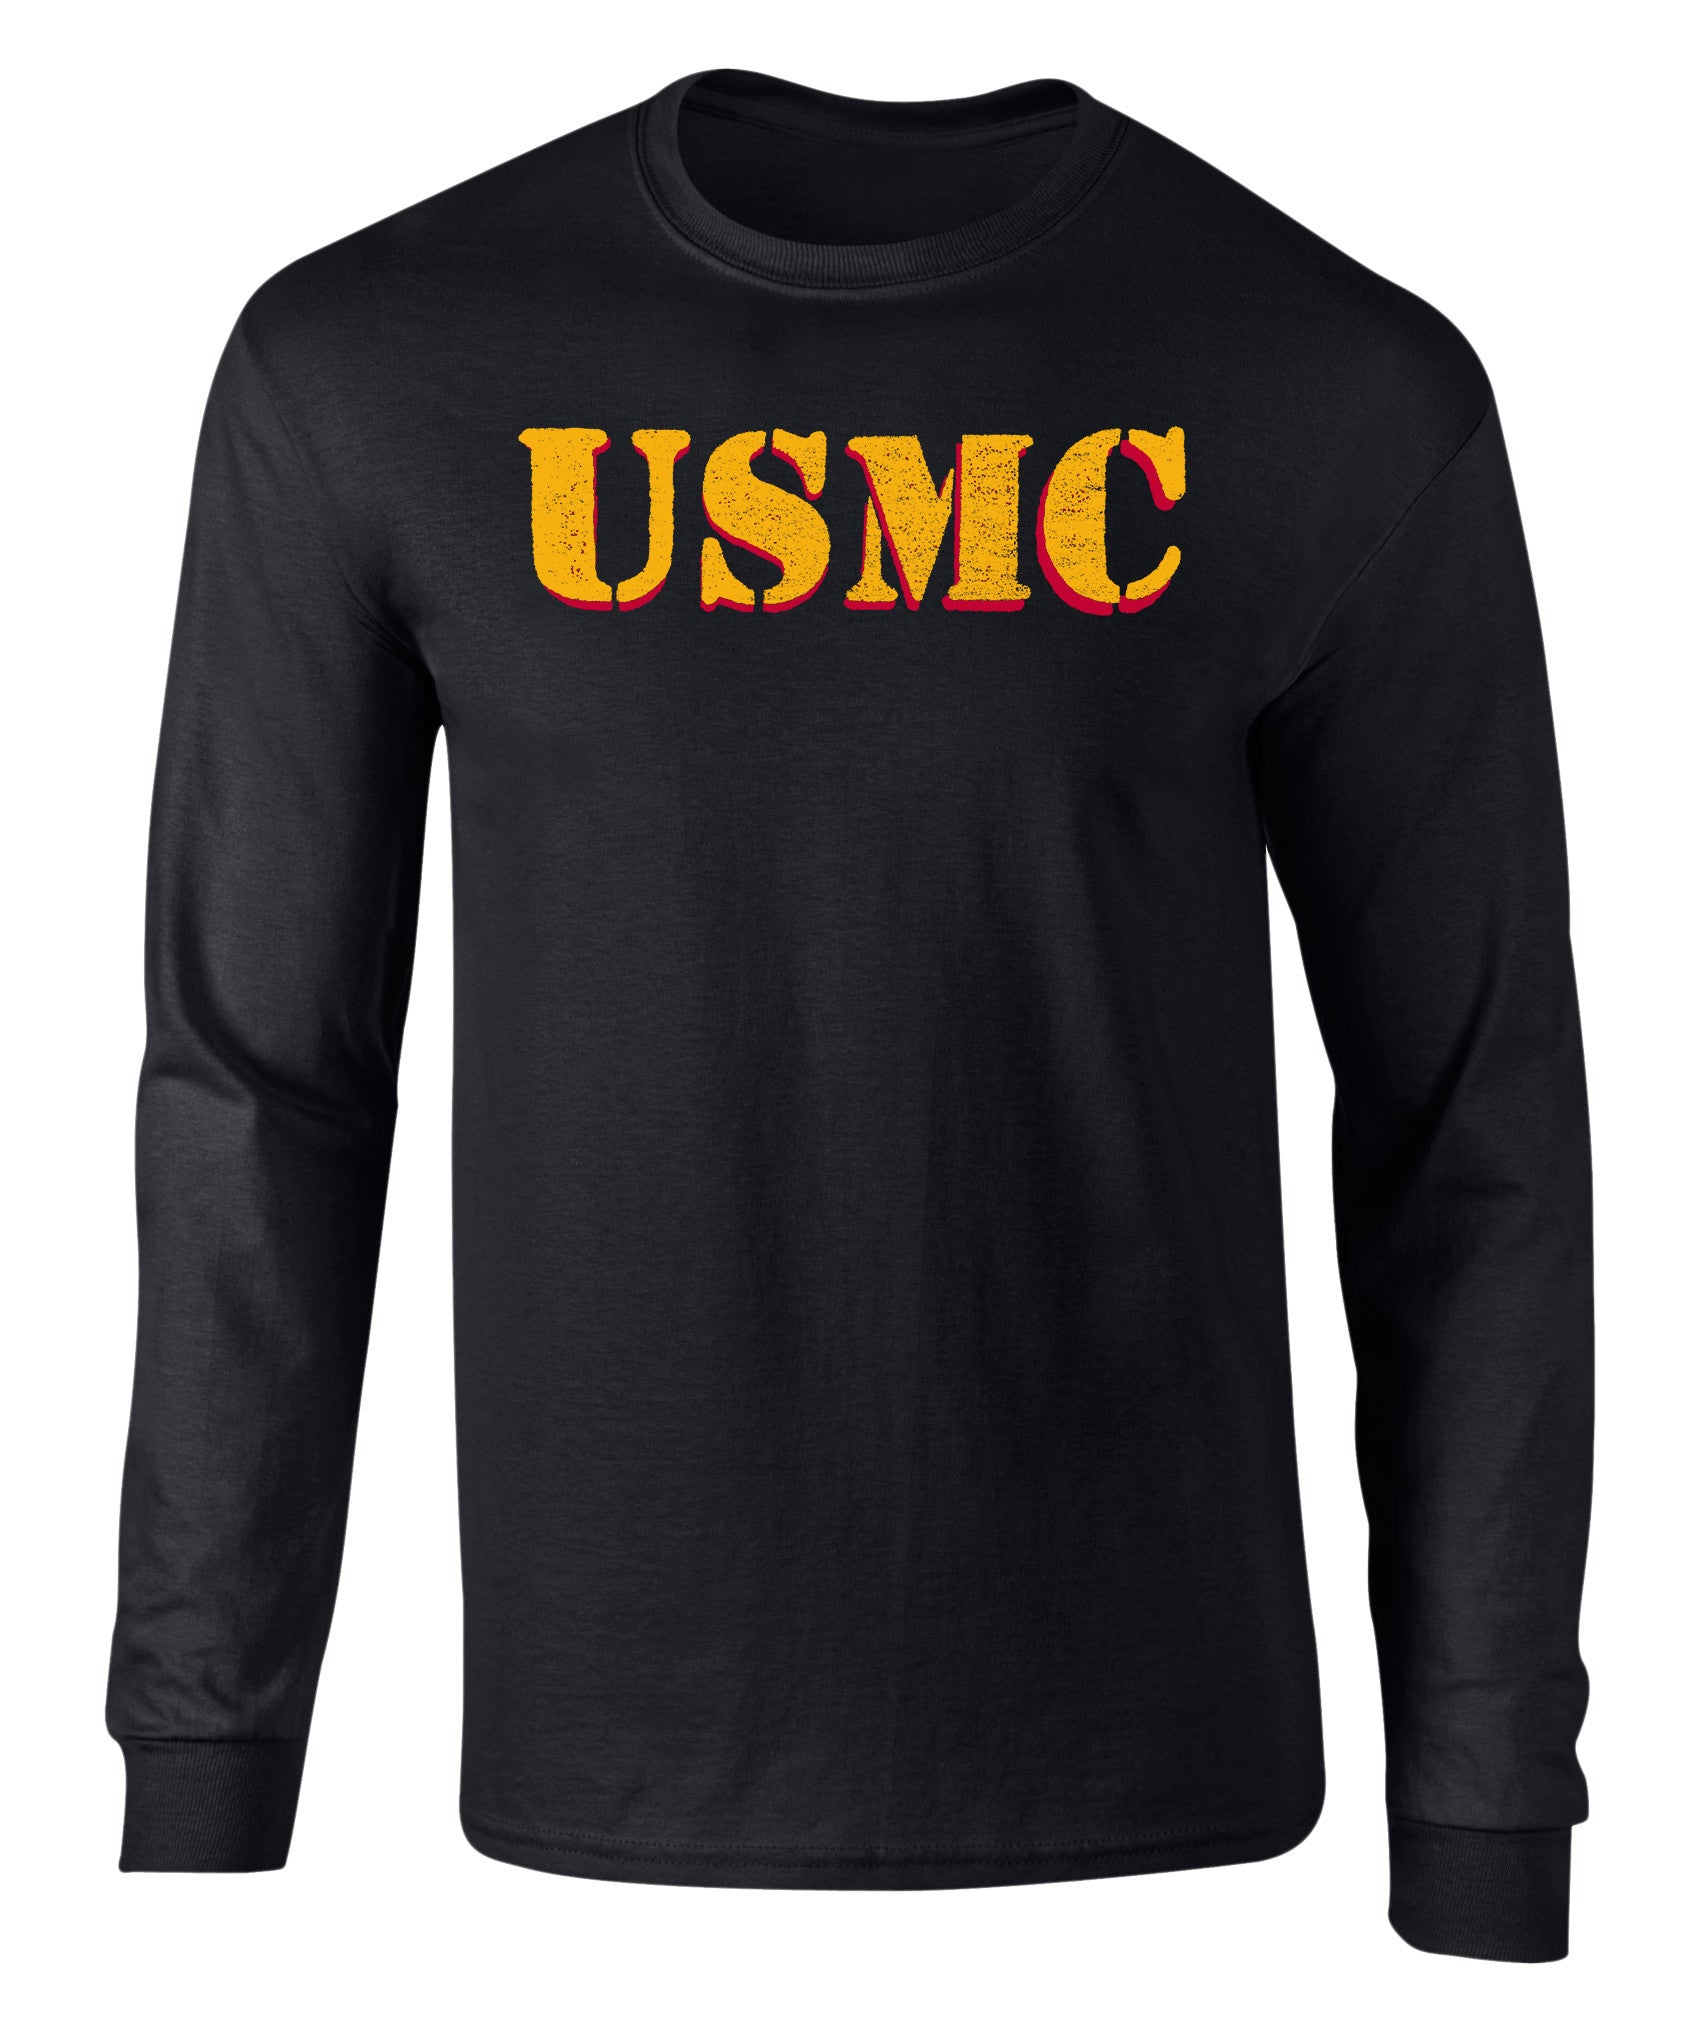 US Marines Vintage USMC Drop Shadow Graphic Long Sleeve T Shirt